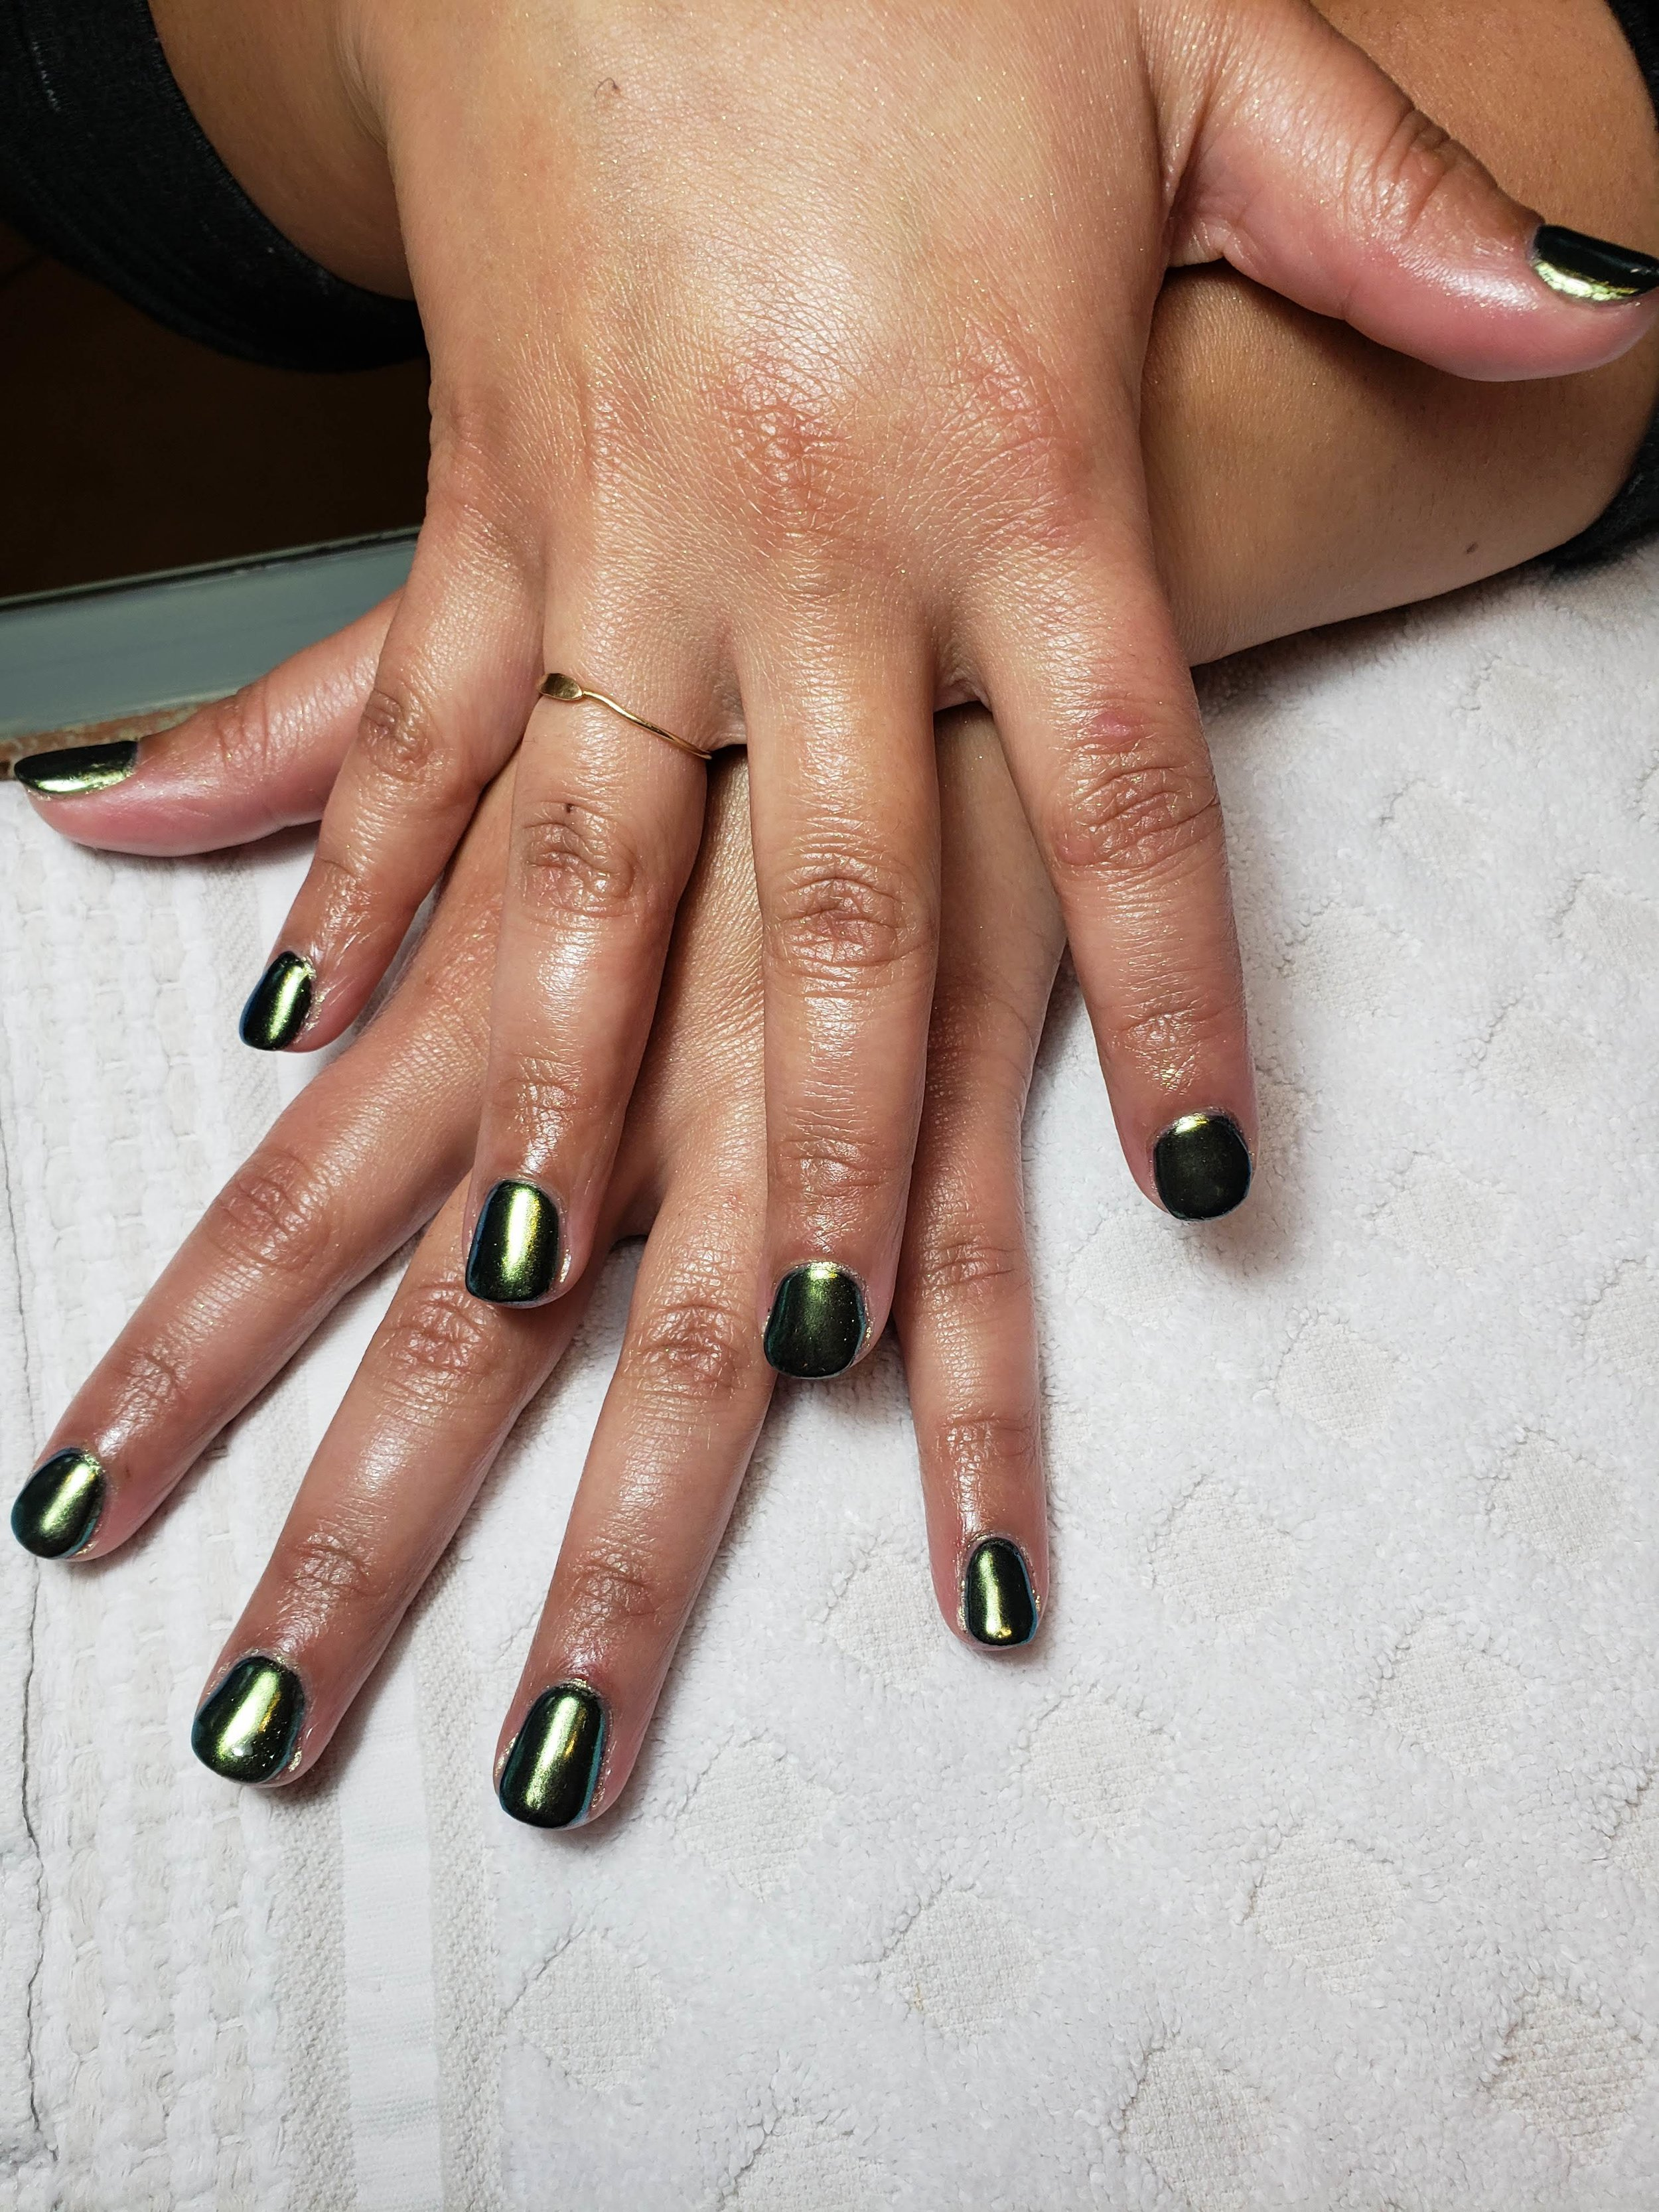 Chrome Nails, Green Mani, Green Manicures, Forest Green, Gel Nails, BioSculpture Gel, Bio Sculpture, Nail Art,